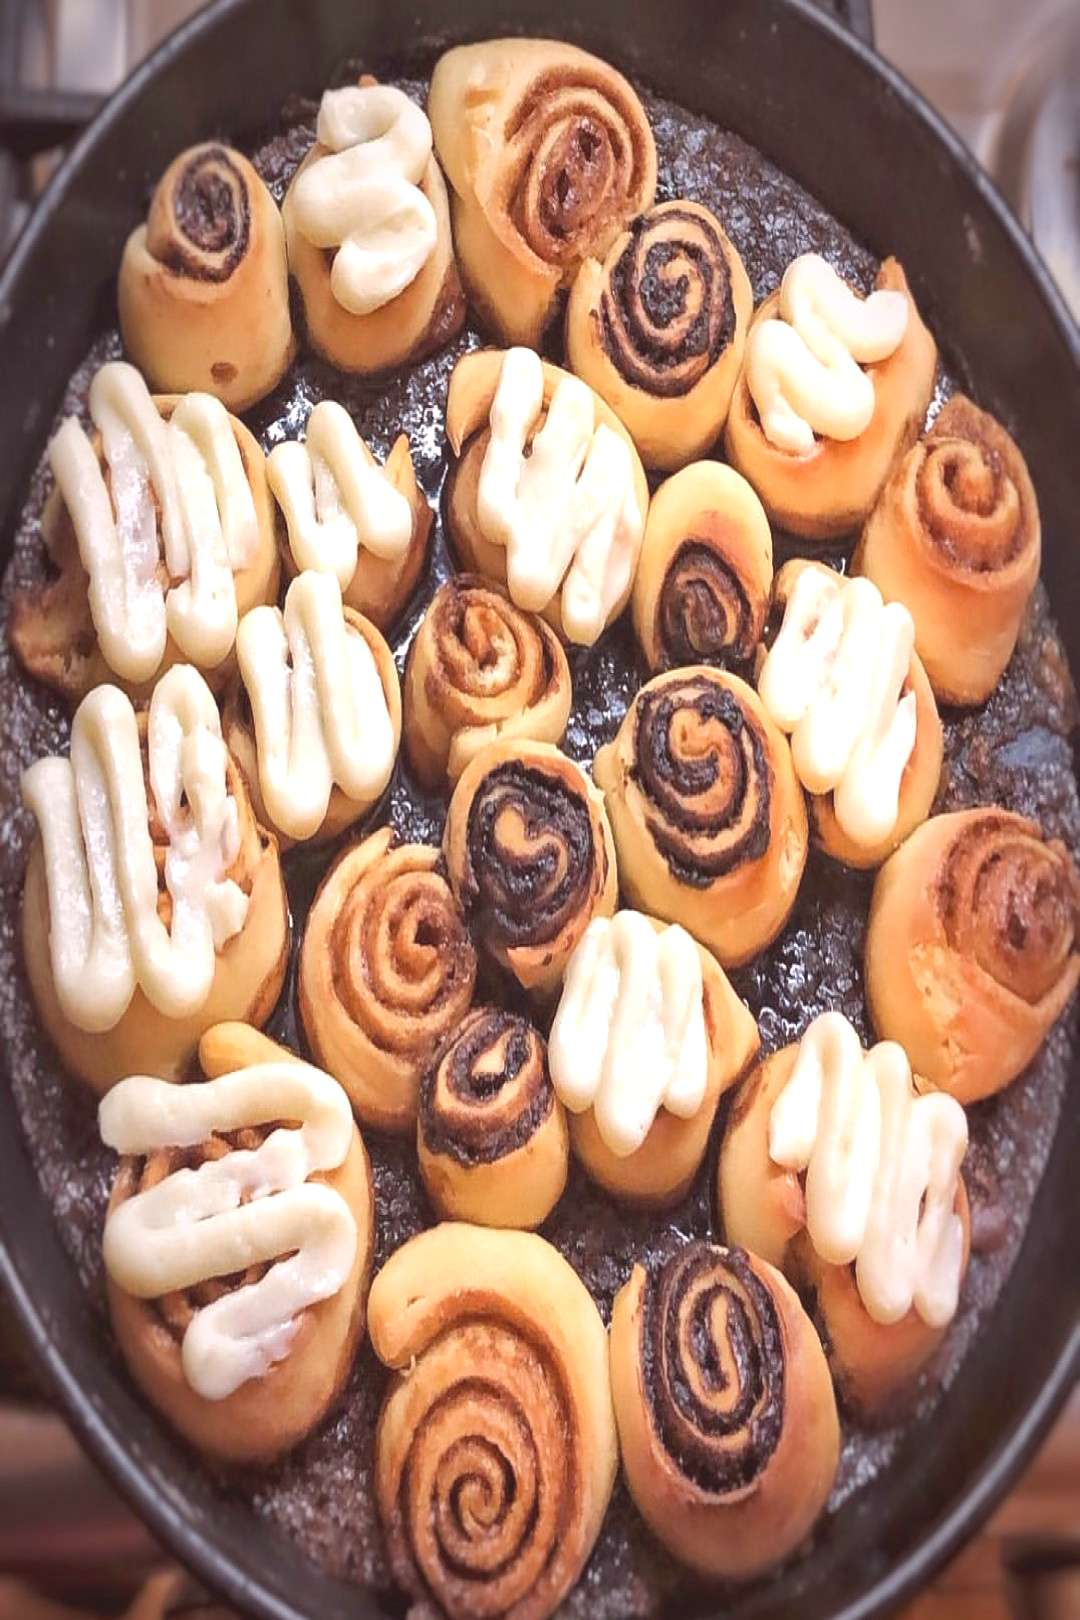 What's better than freshly baked cinnamon and nutella rolls?For t